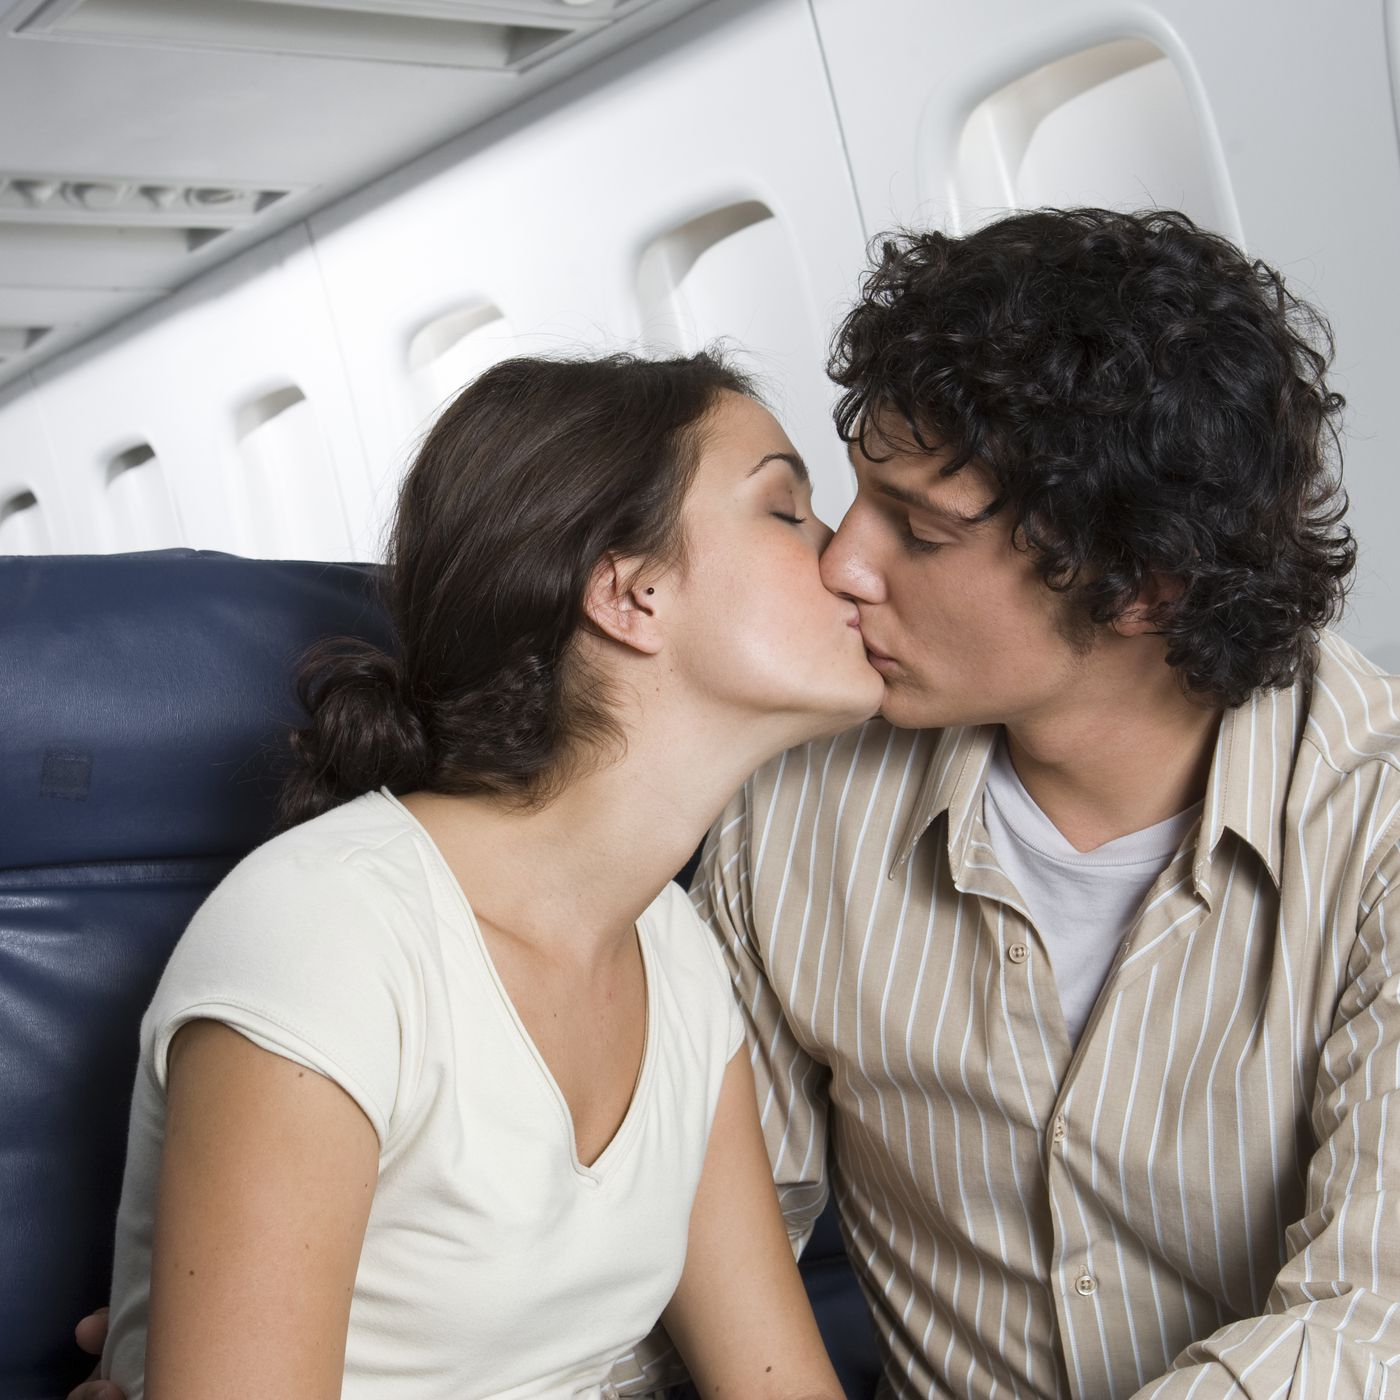 Finding love on a plane: why the myth persists - Vox